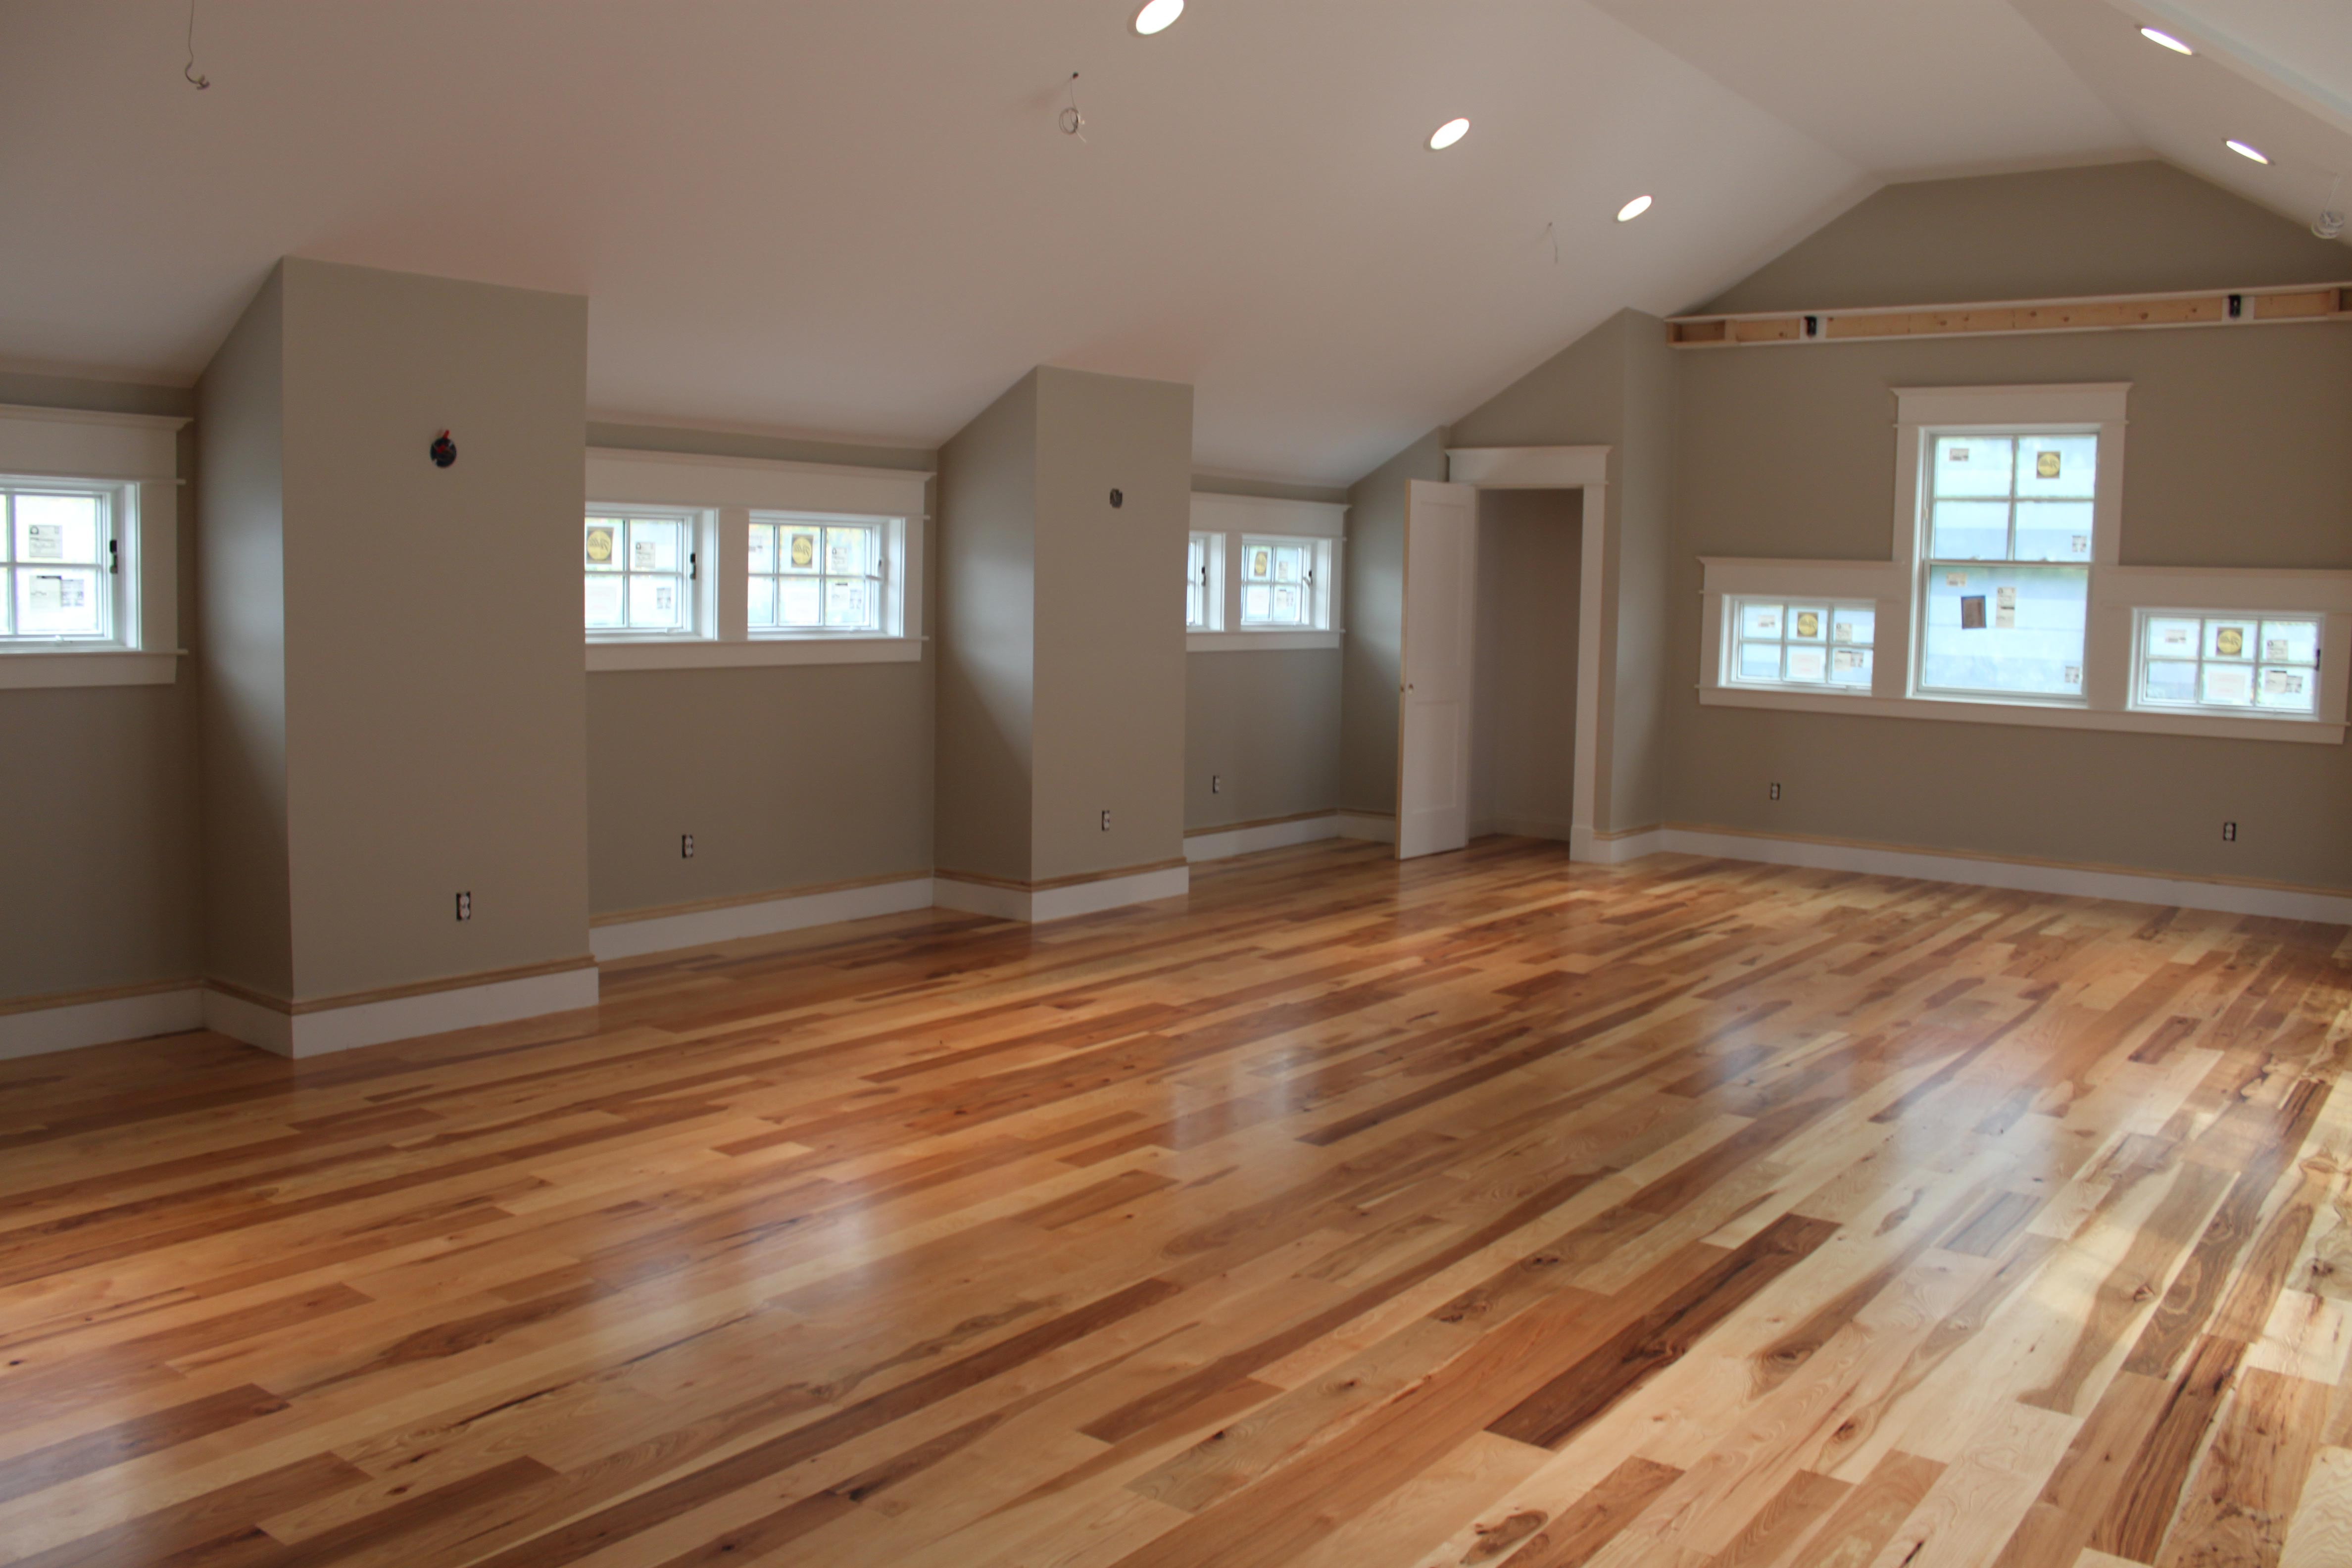 hardwood floors the top surface finishes for hardwood flooring XJUWHKZ